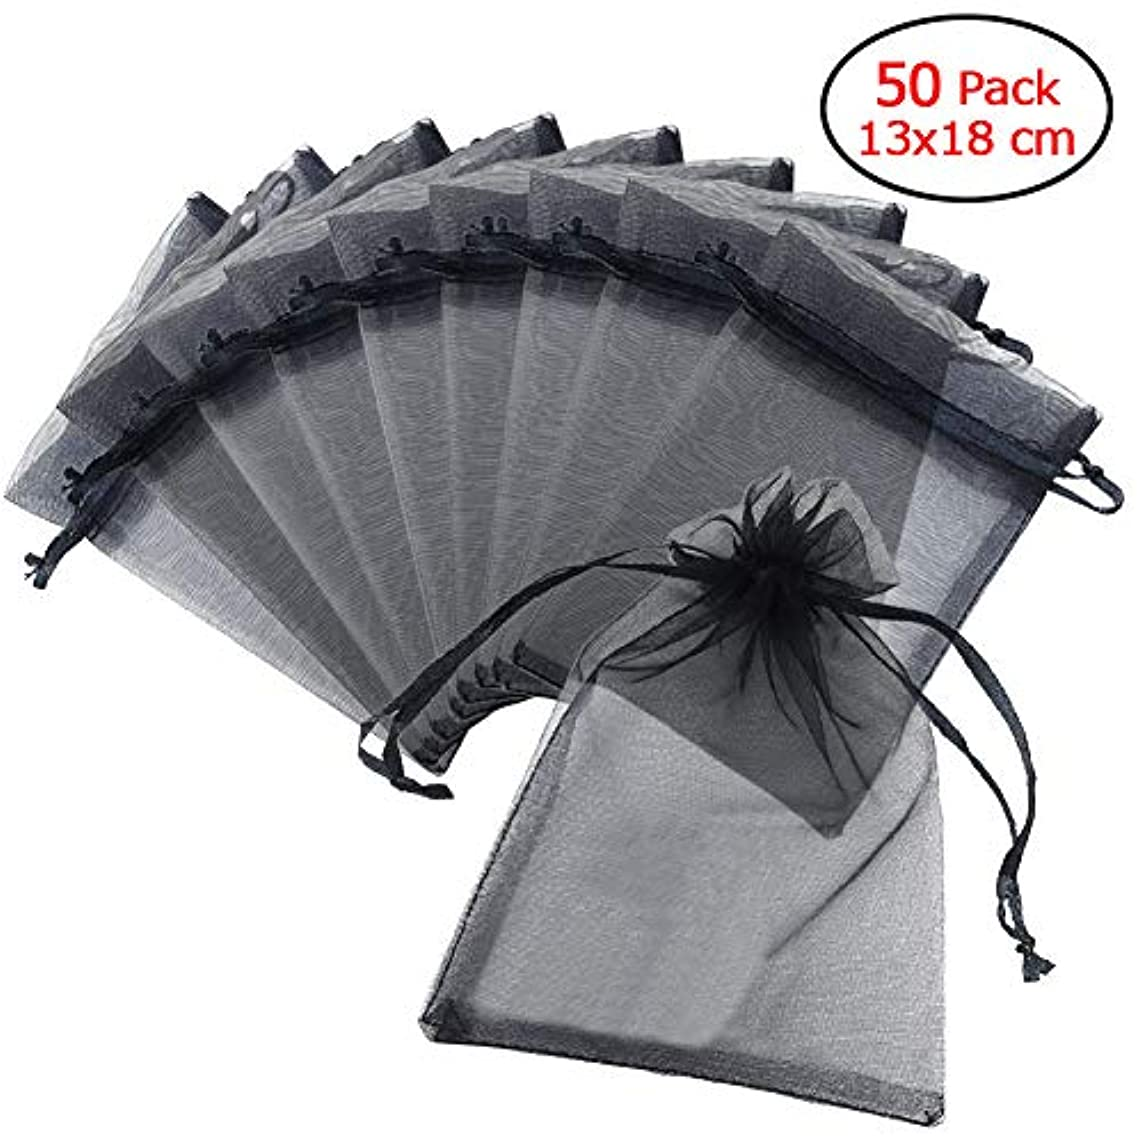 Schliersee 5x7 Black Organza Bags 50pcs Drawstring Candy Jewelry Pouches Party Festival Wedding Gift Bags